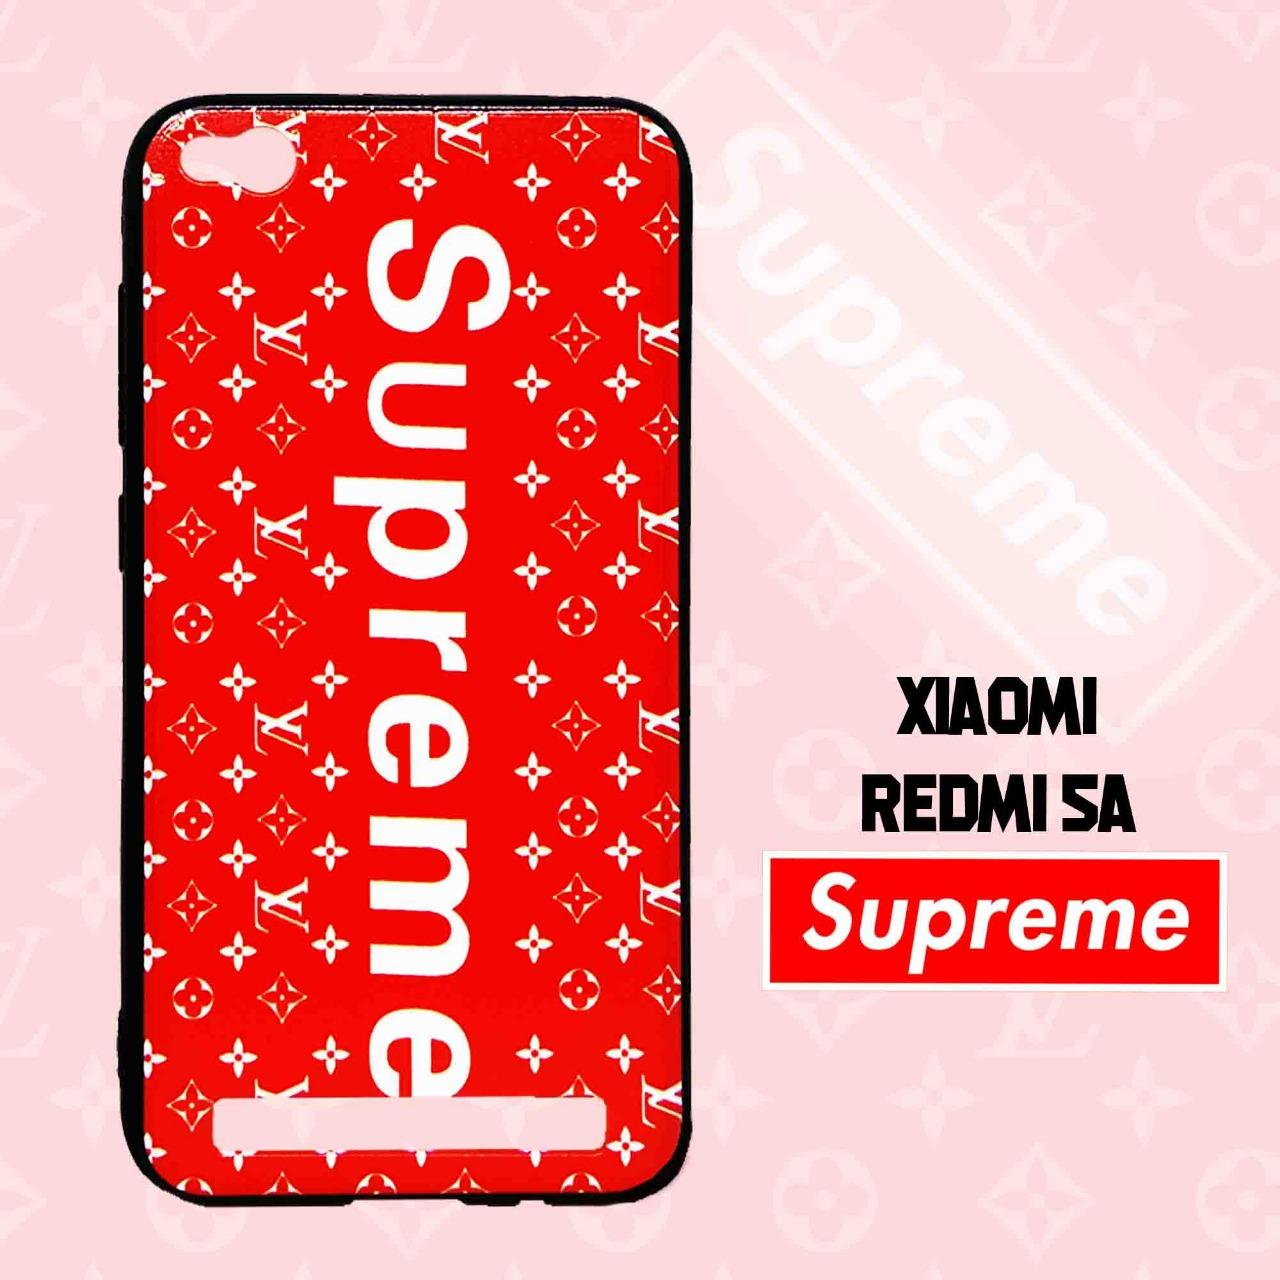 Marintri Case Xiaomi Redmi 5A New Fashion Supreme Red Edition